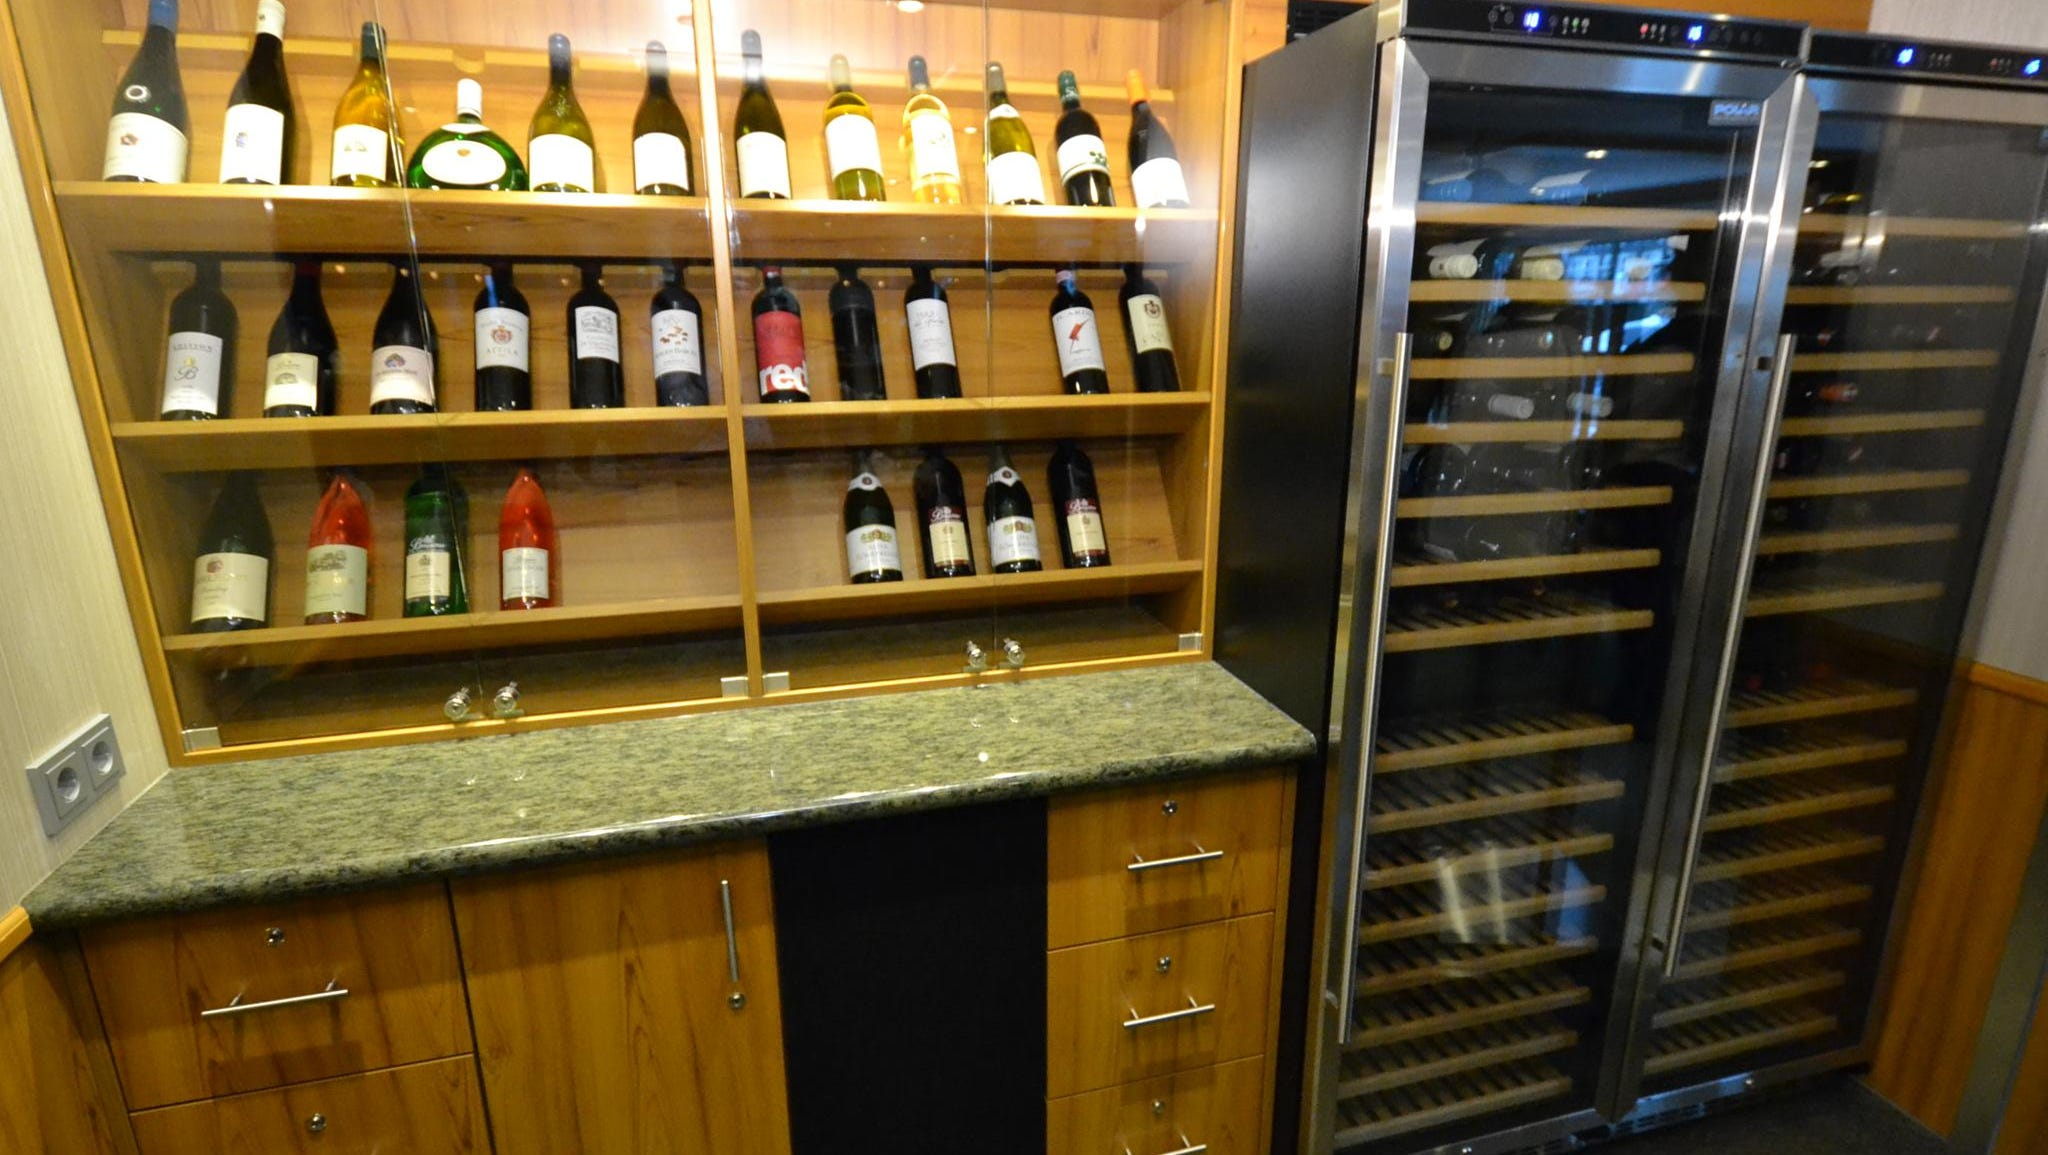 The wine storage area in the main dining room.